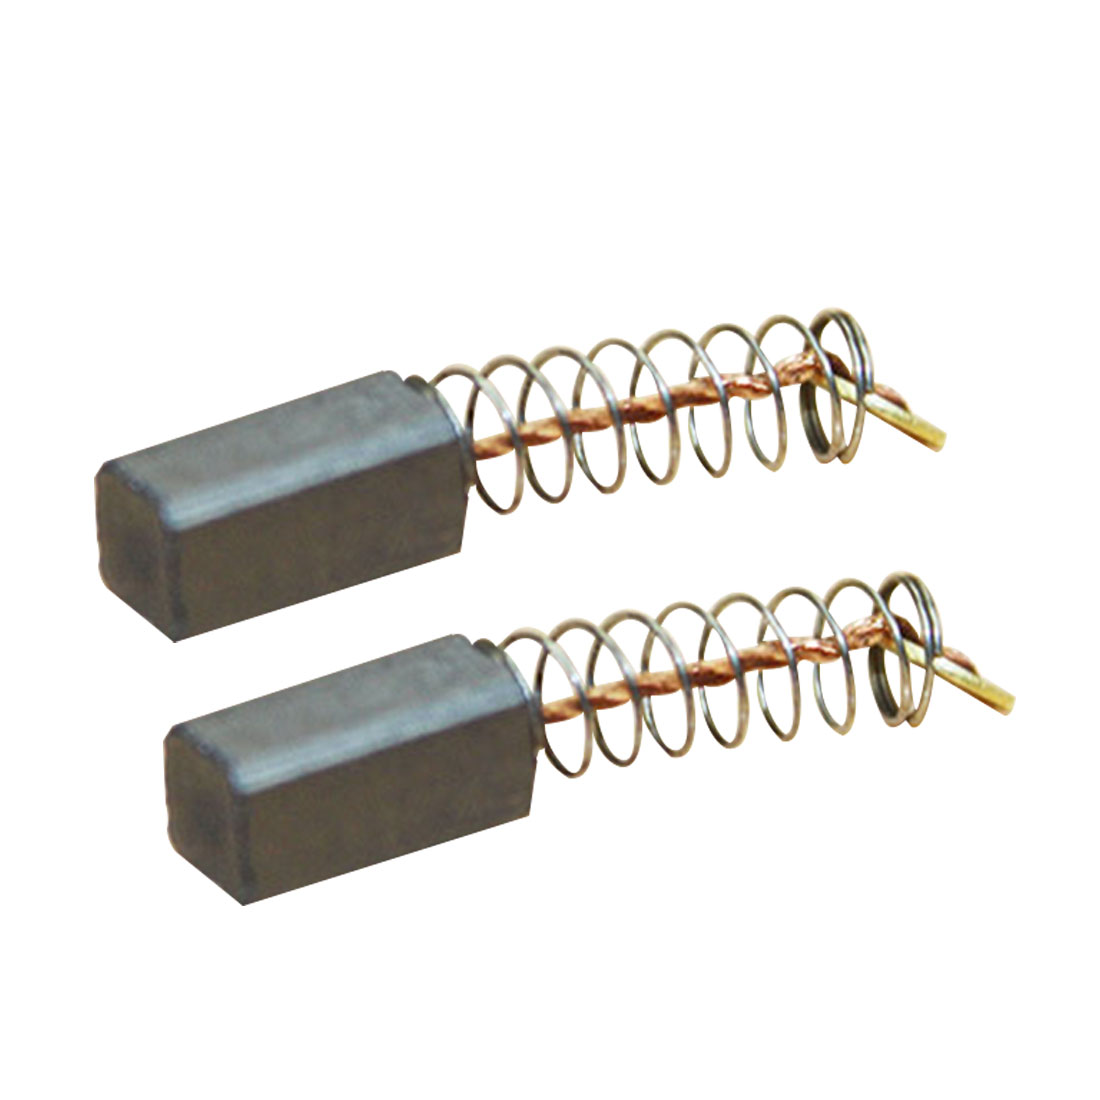 Electric Dril Motor 2pcs Replacement For Power Tool Grind Accessories Repairing Spare Park For Dremel 3000/200